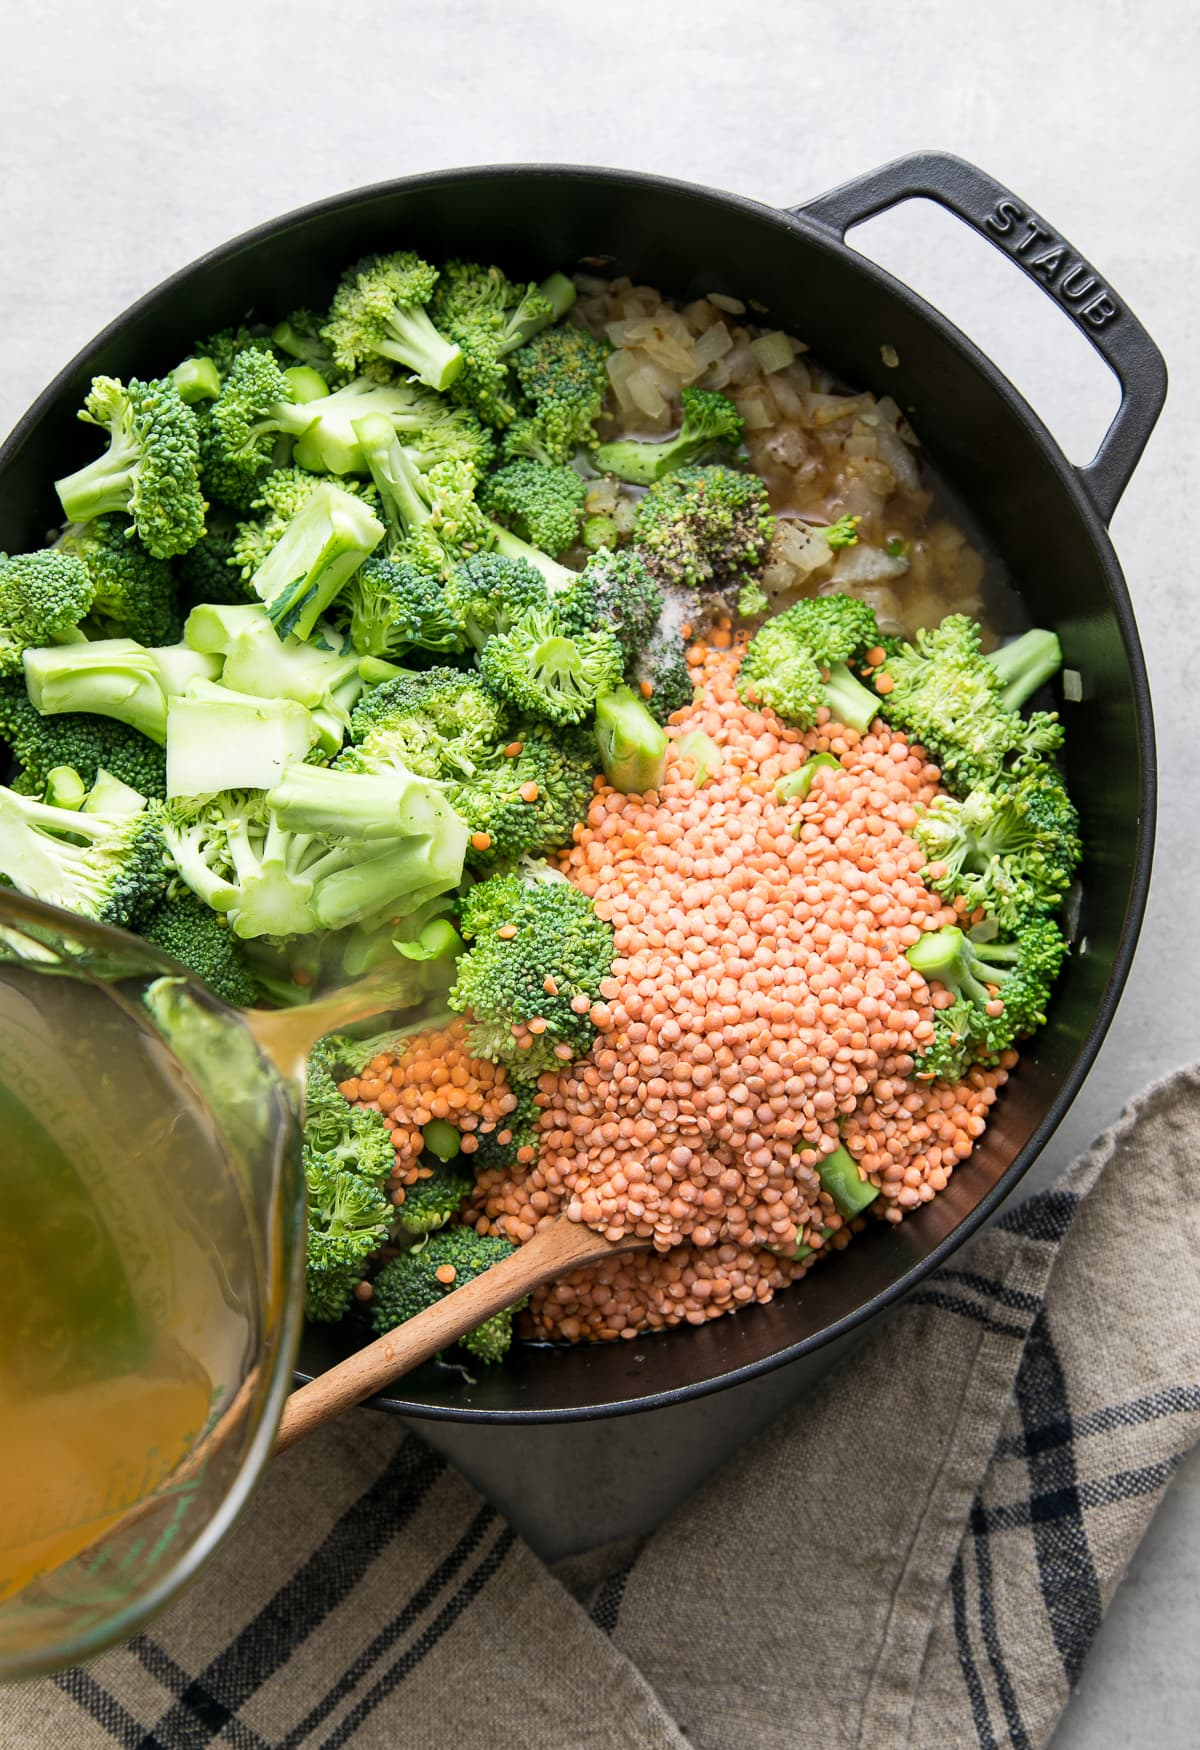 top down view showing the process of adding vegetable broth to pot filled with broccoli red lentil ingredients.